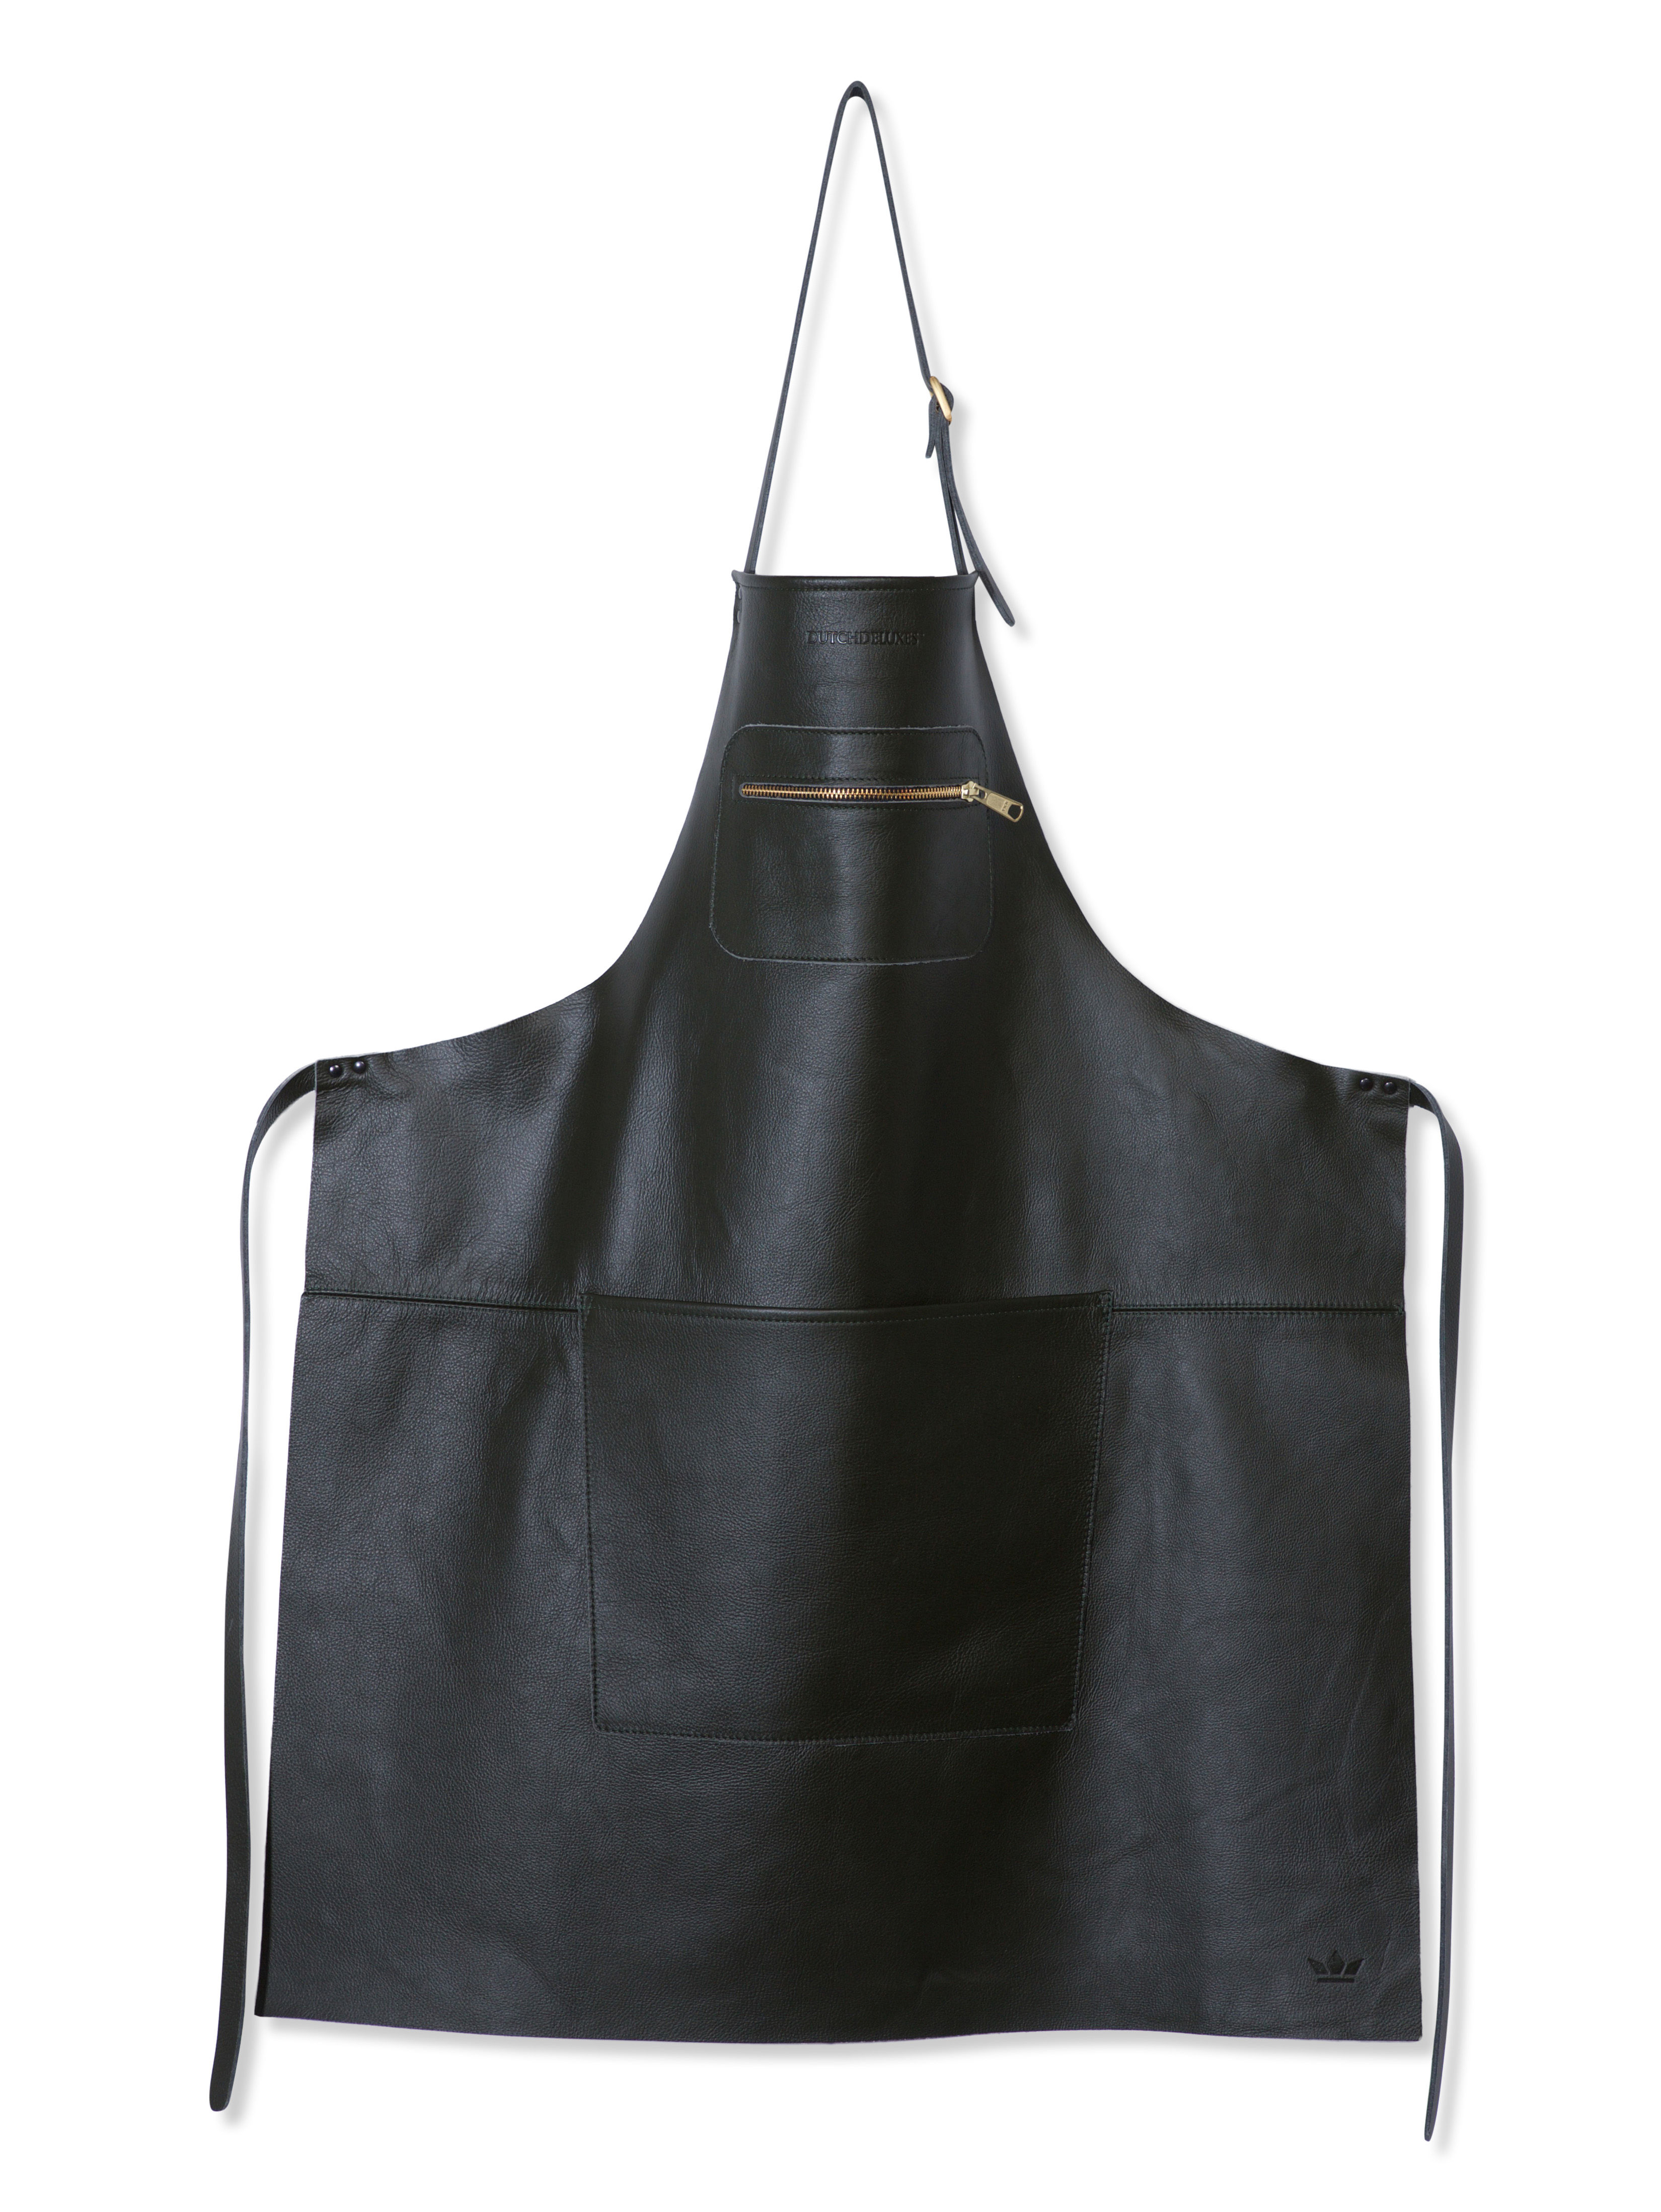 Kitchenware - Tea Towels & Aprons - Apron - leather / Zipped pocket by Dutchdeluxes - Black - Full grain leather